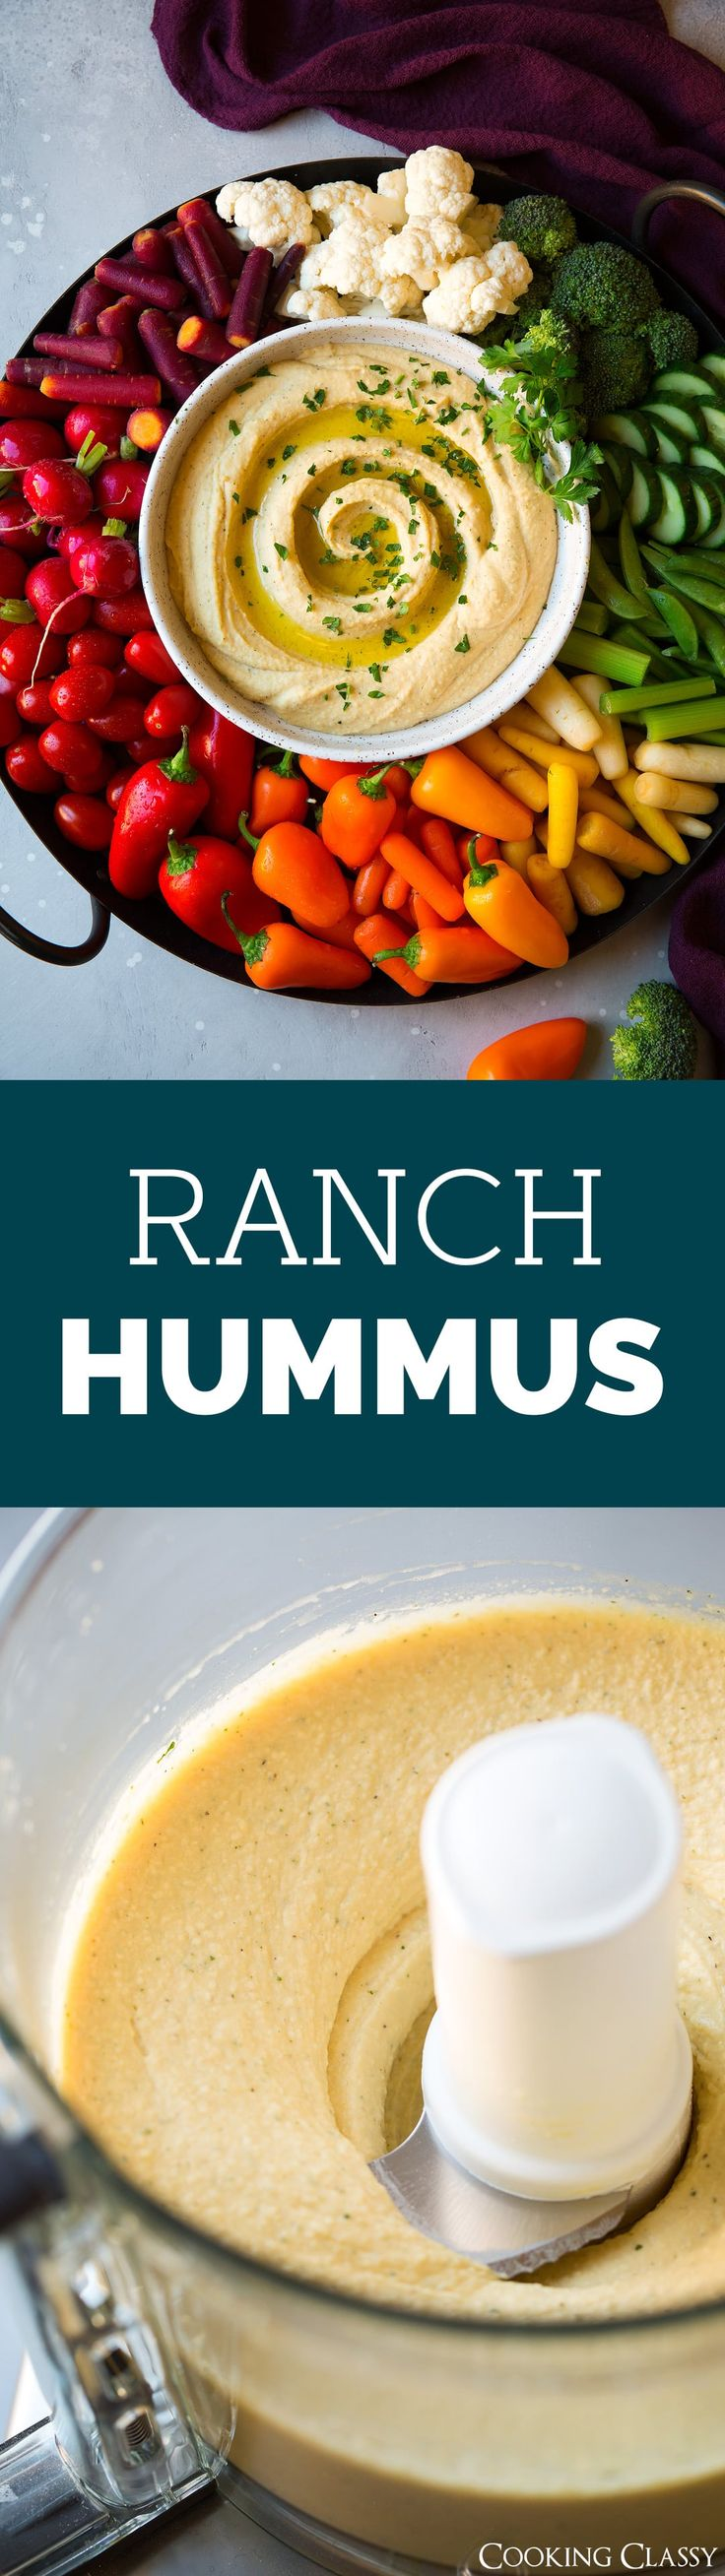 Ranch Hummus - flavorful, easy to make Ranch Hummus that's perfect for snacking and parties! Deliciously creamy with the just the right touch of that classic ranch taste. #ranch #hummus #dip #appetizer #partyfood  via @cookingclassy